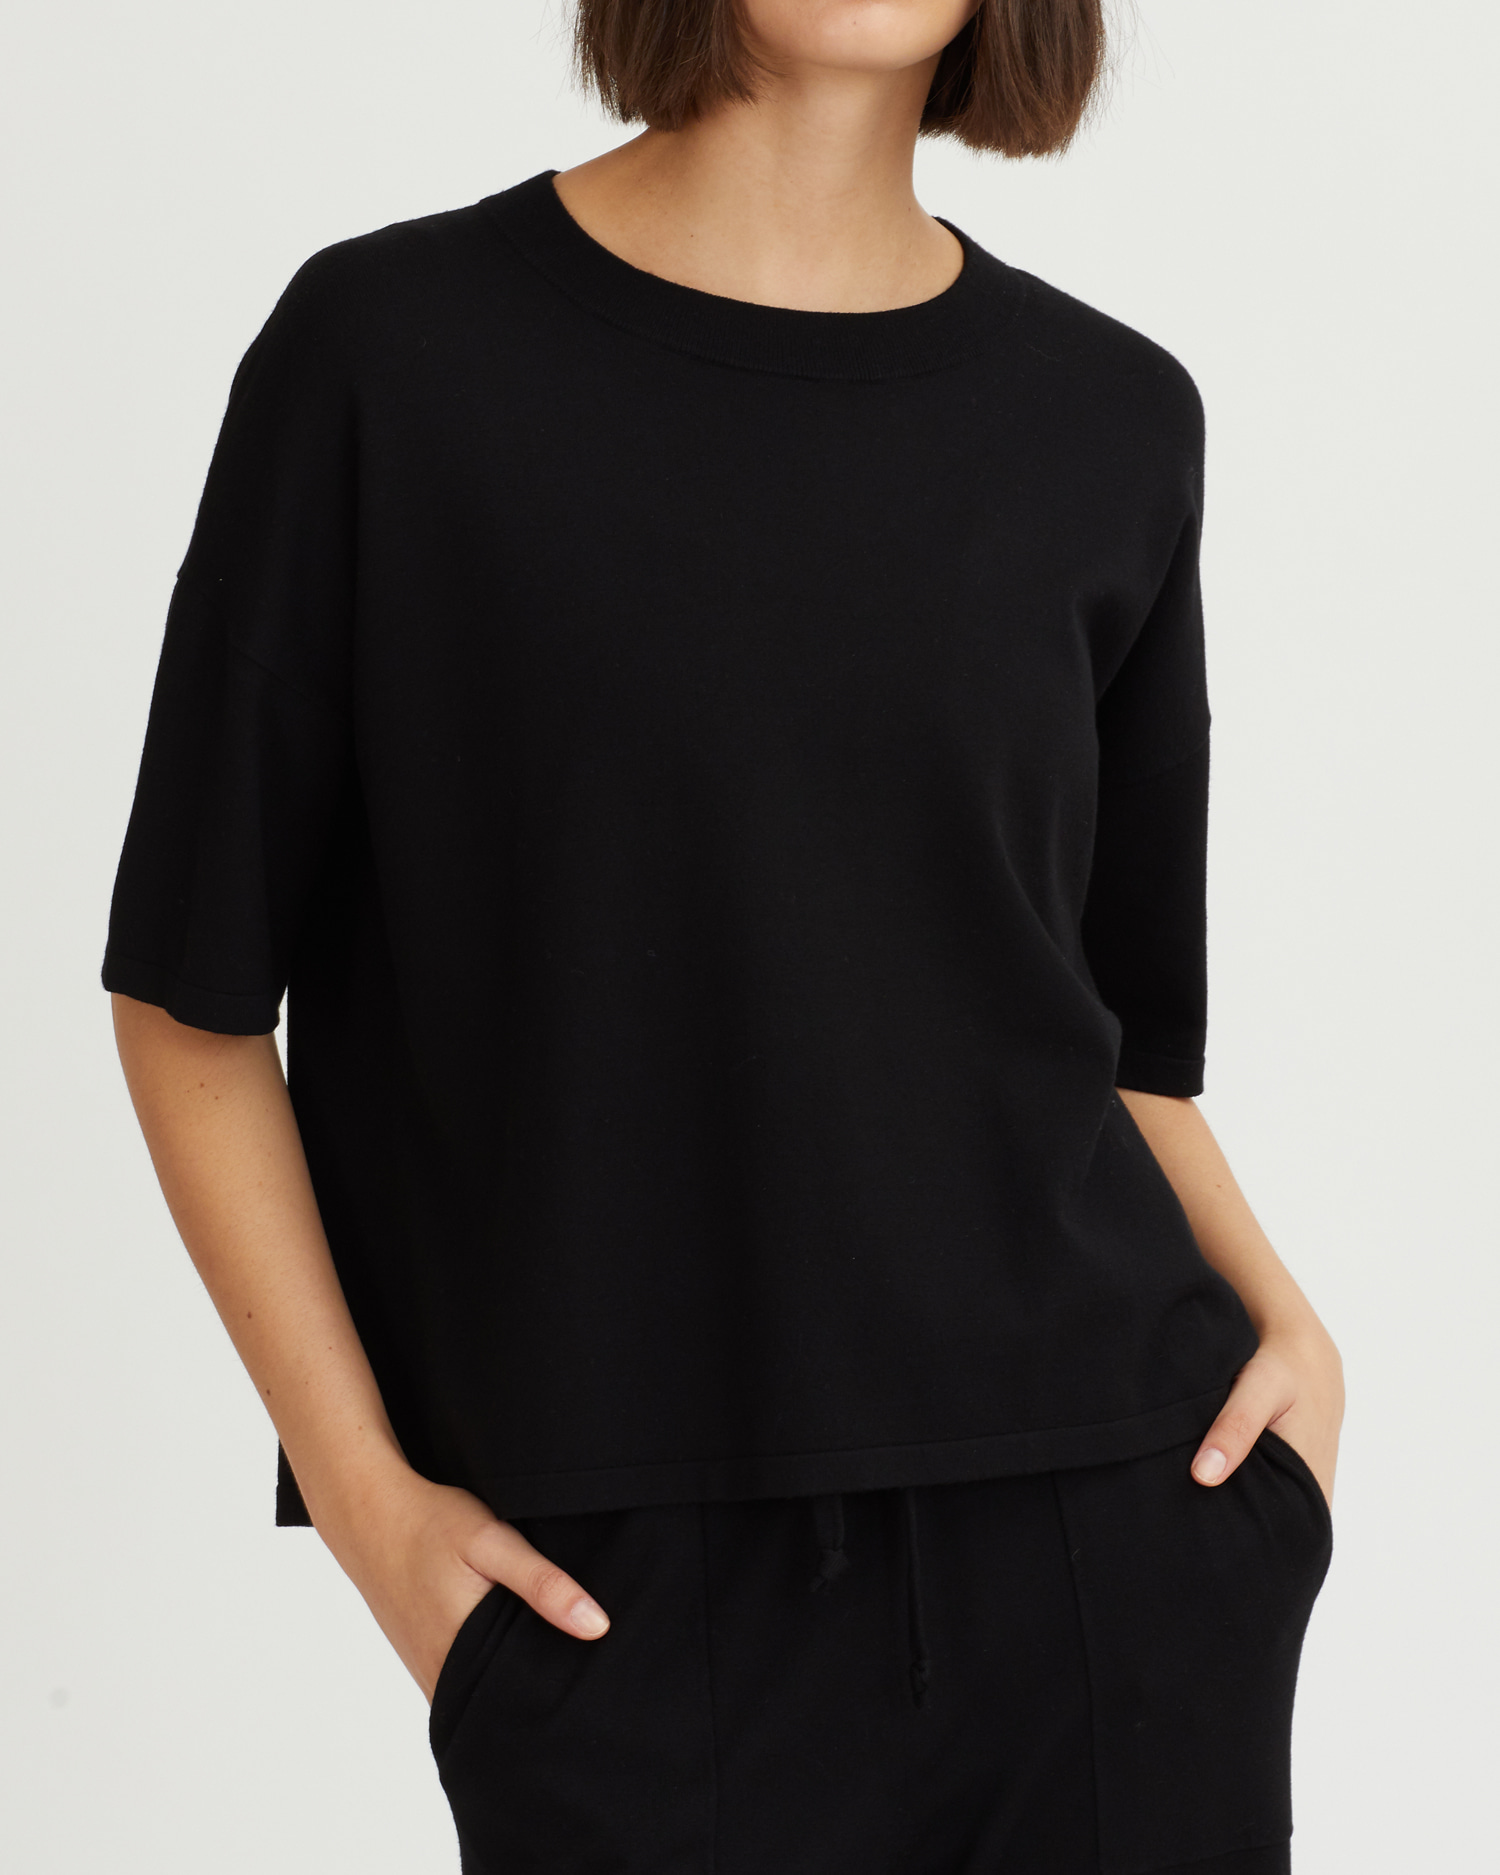 GEMMA TOP BLACK